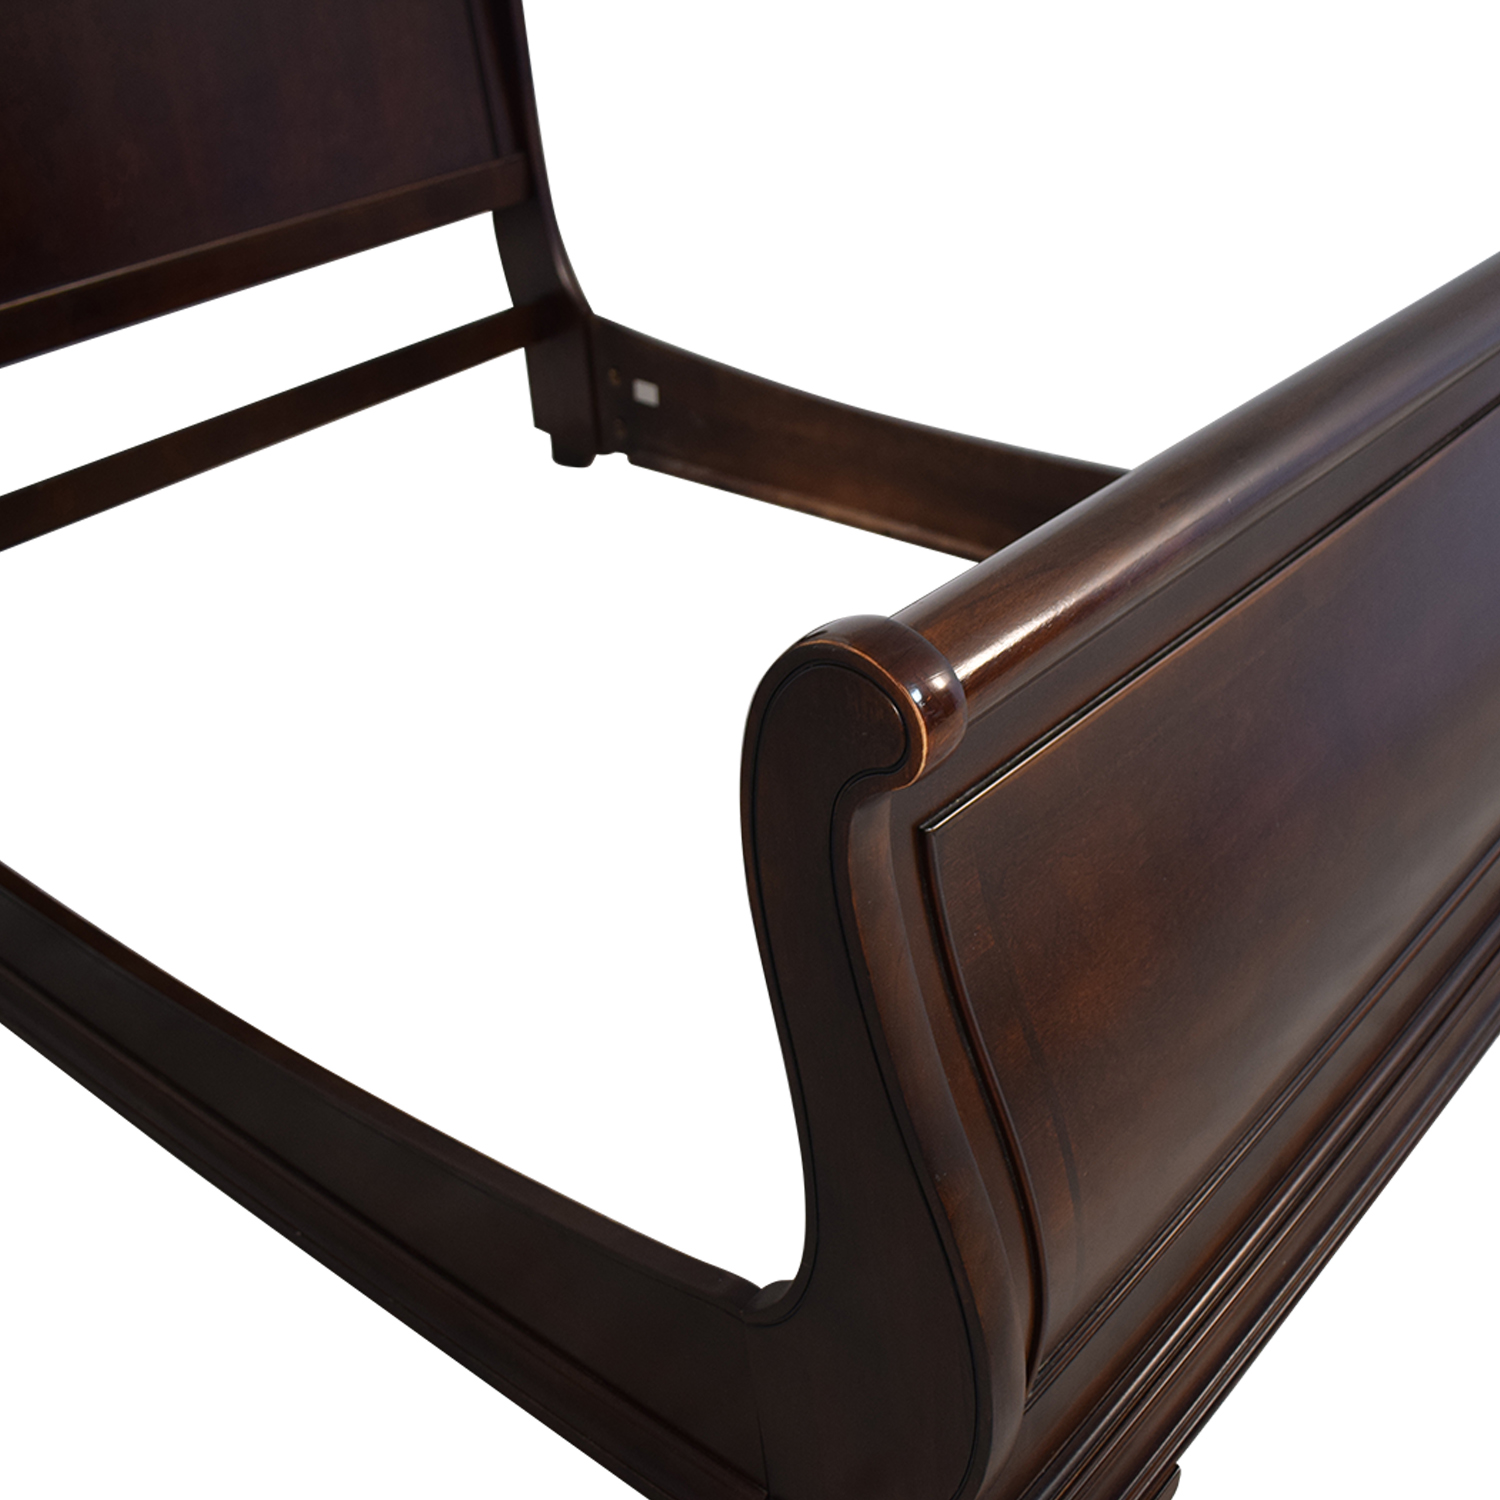 Havertys Havertys Orleans Queen Grand Sleigh Bed Frame used